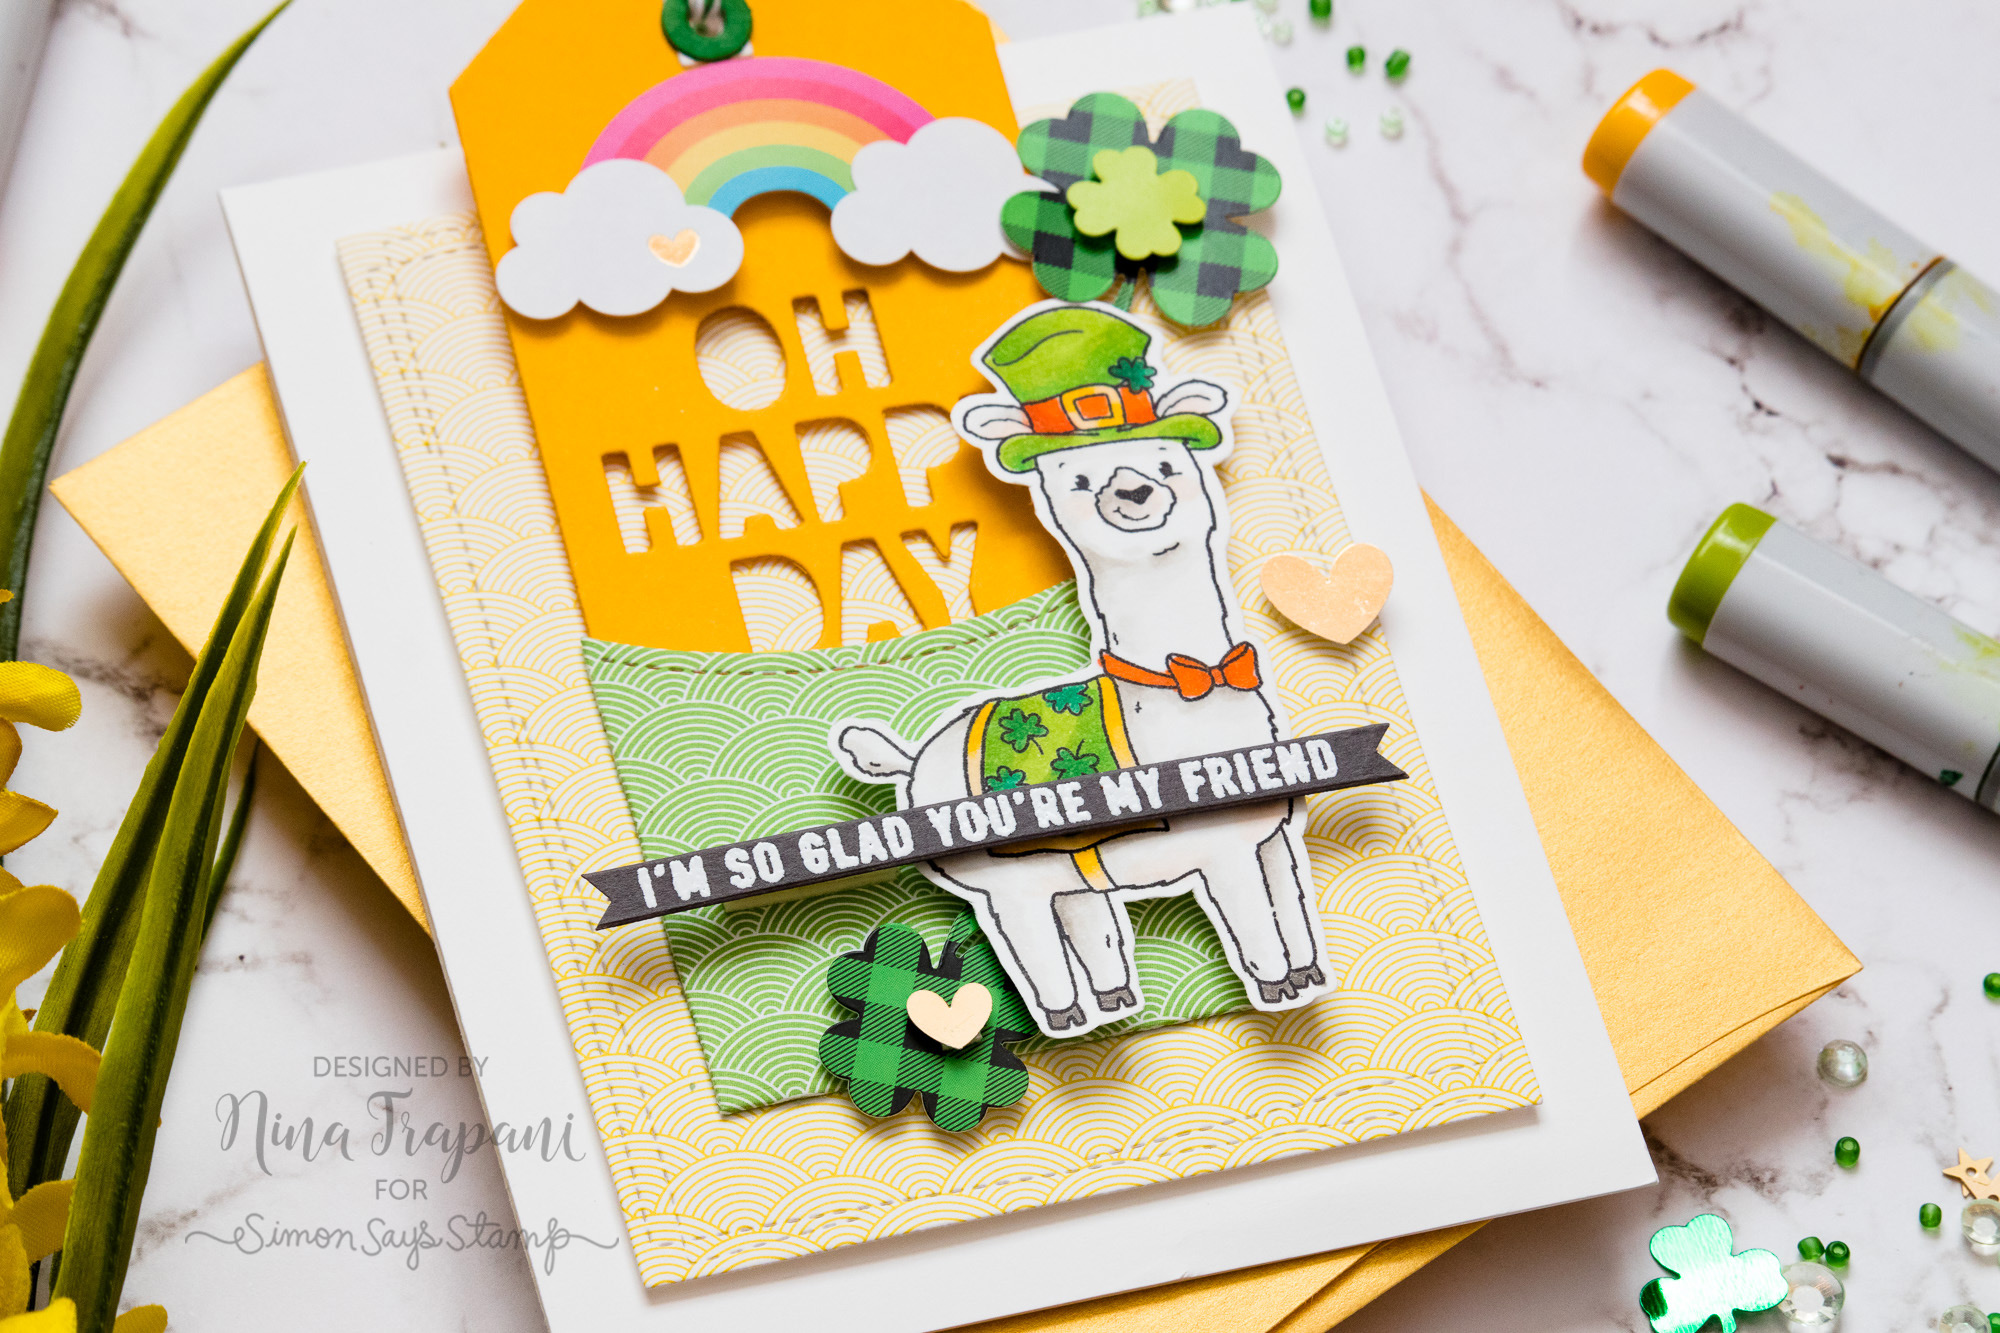 Pull Tab Message + Simon Says Stamp's March 2019 Card Kit